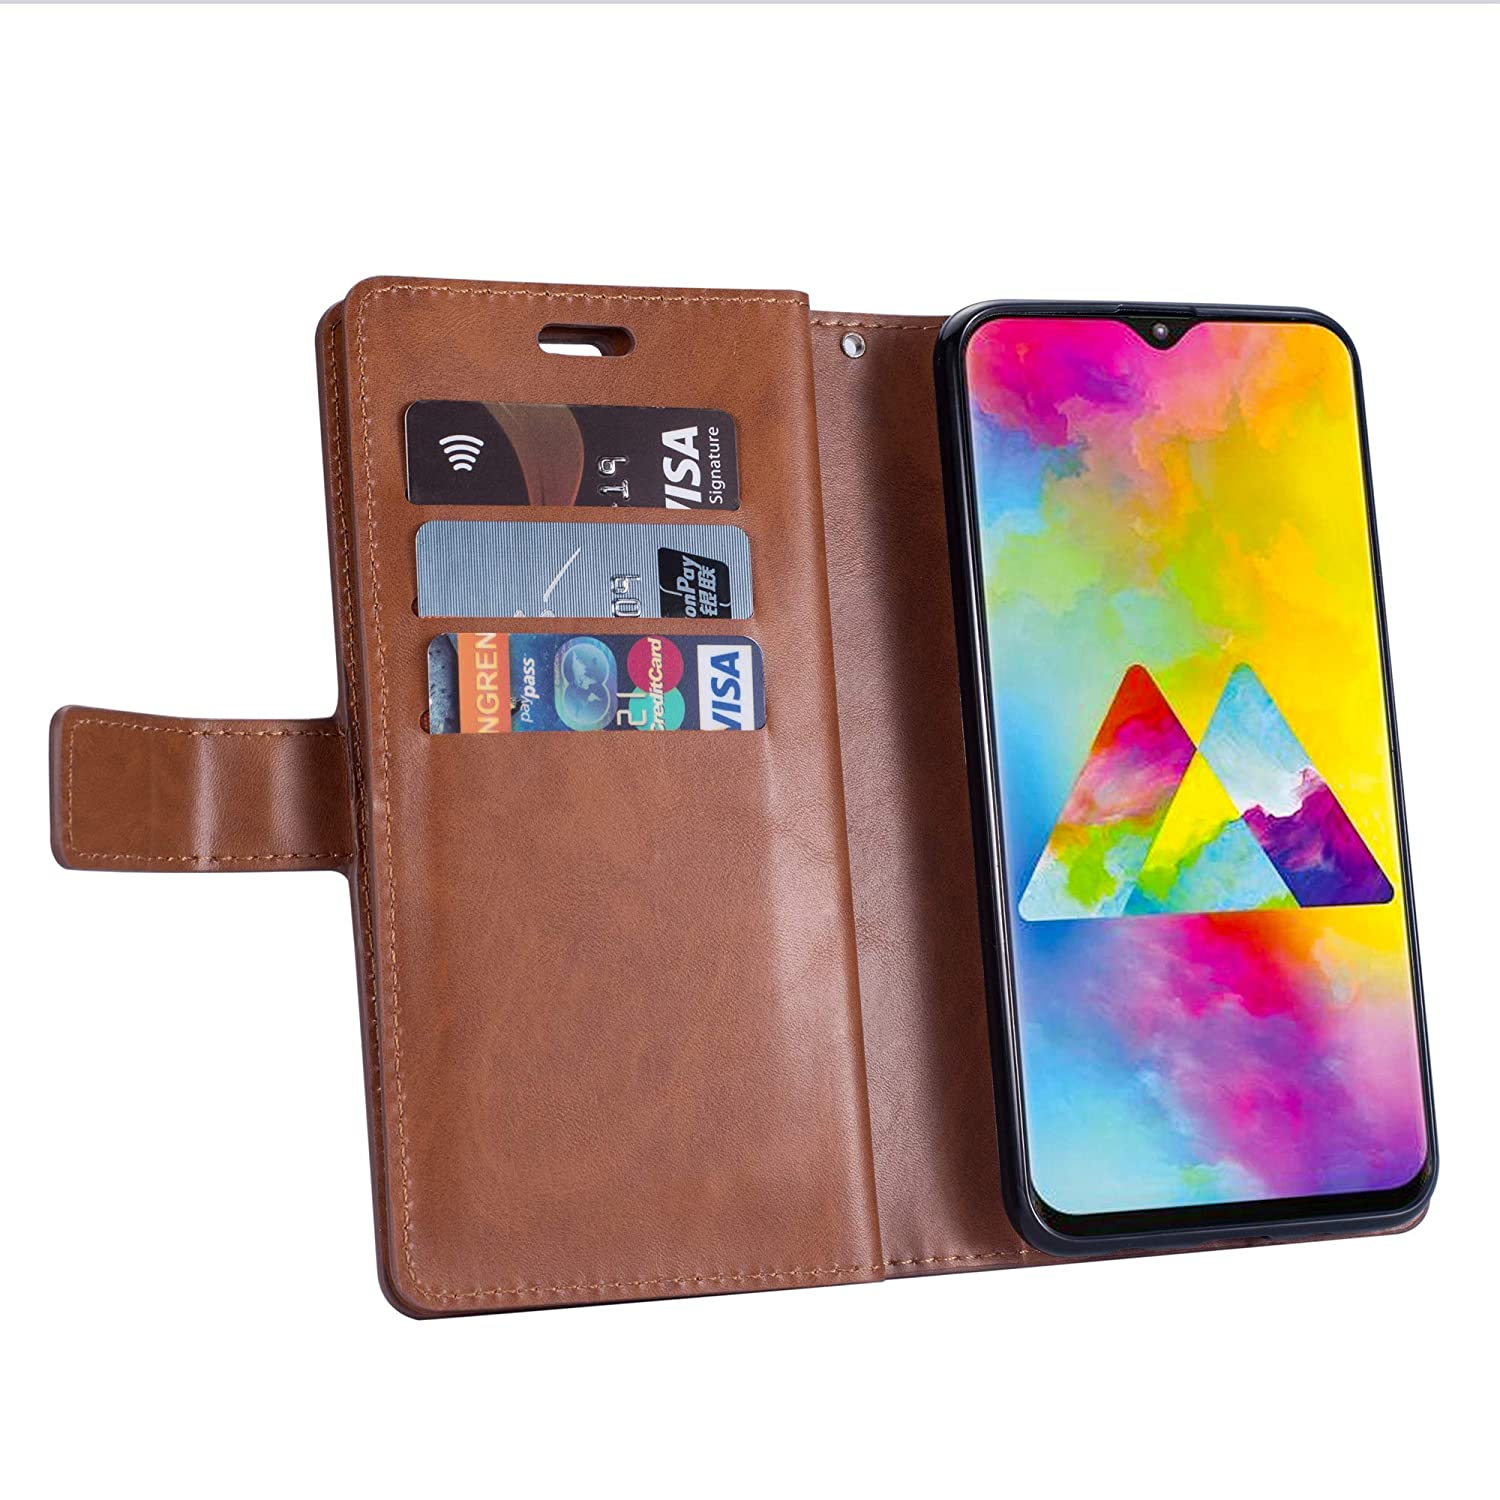 JAWSEU Case Flip Compatible with Samsung Galaxy A20e Wallet Case Premium PU Leather Folio Front and Back Full Body Stand Cover Inner Soft TPU Silicone with Card Slots Magnetic Closure Case,Brown